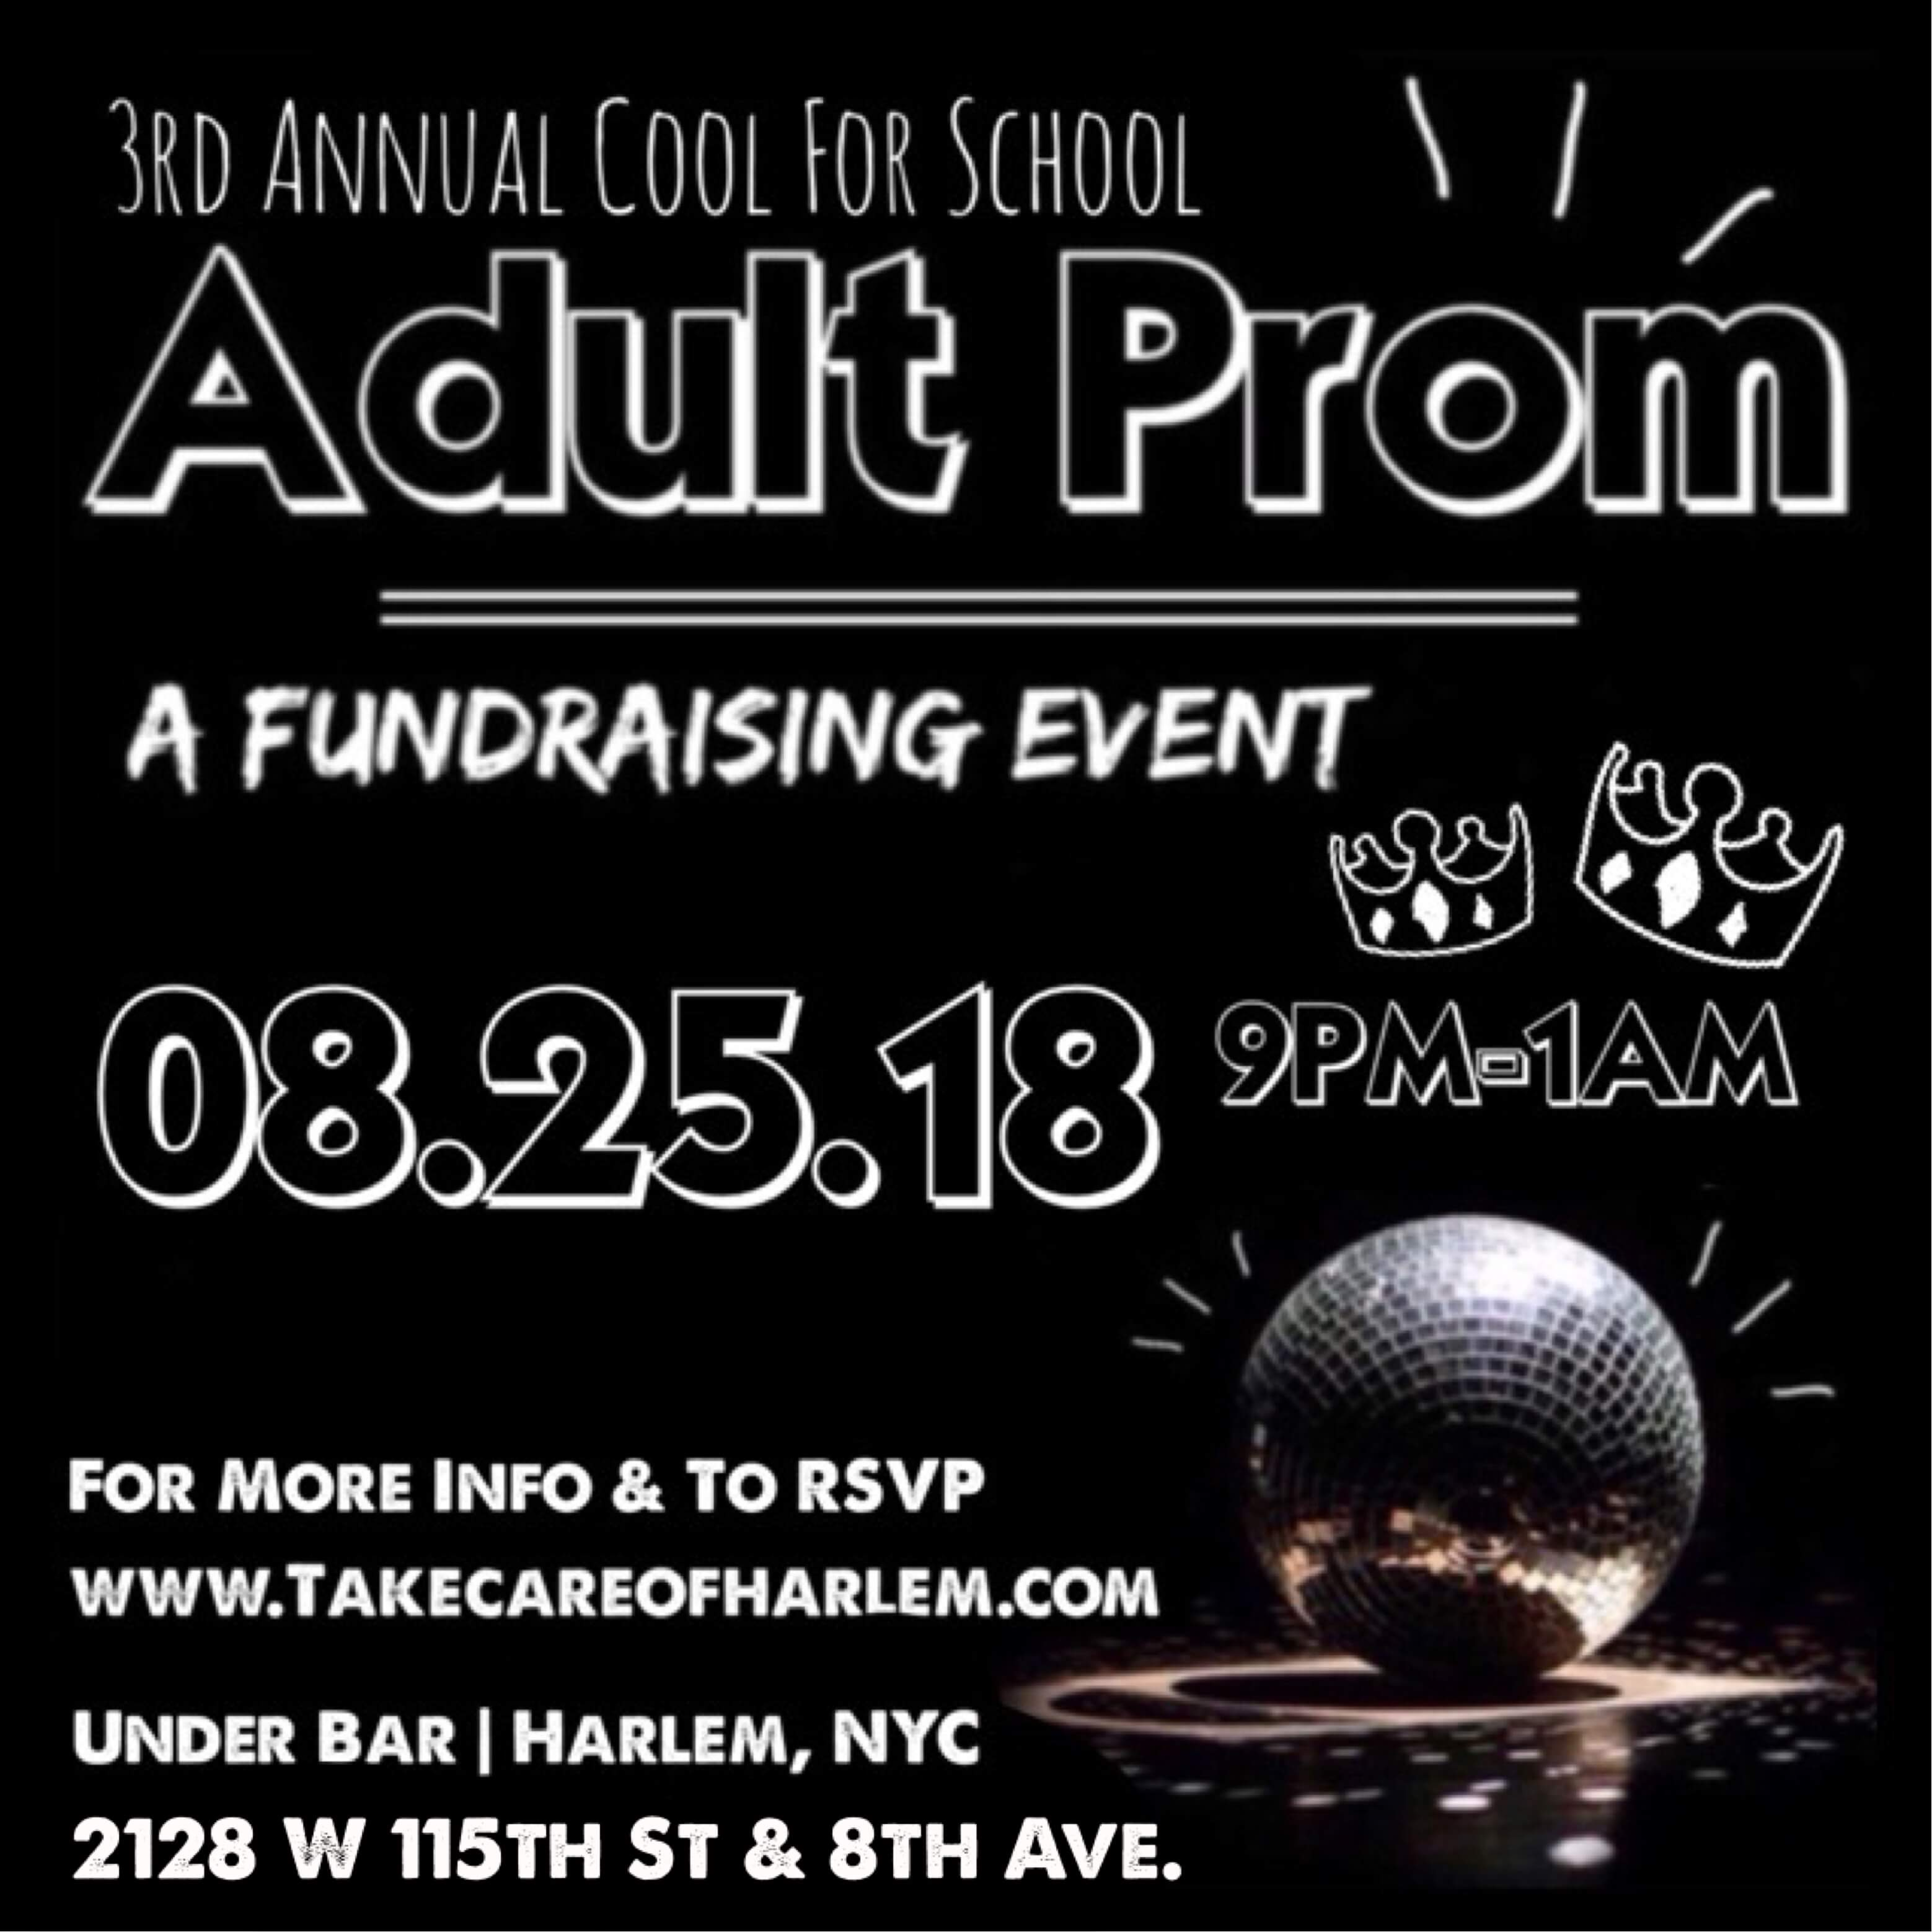 Adult Prom Benefiting #takecareofharlem